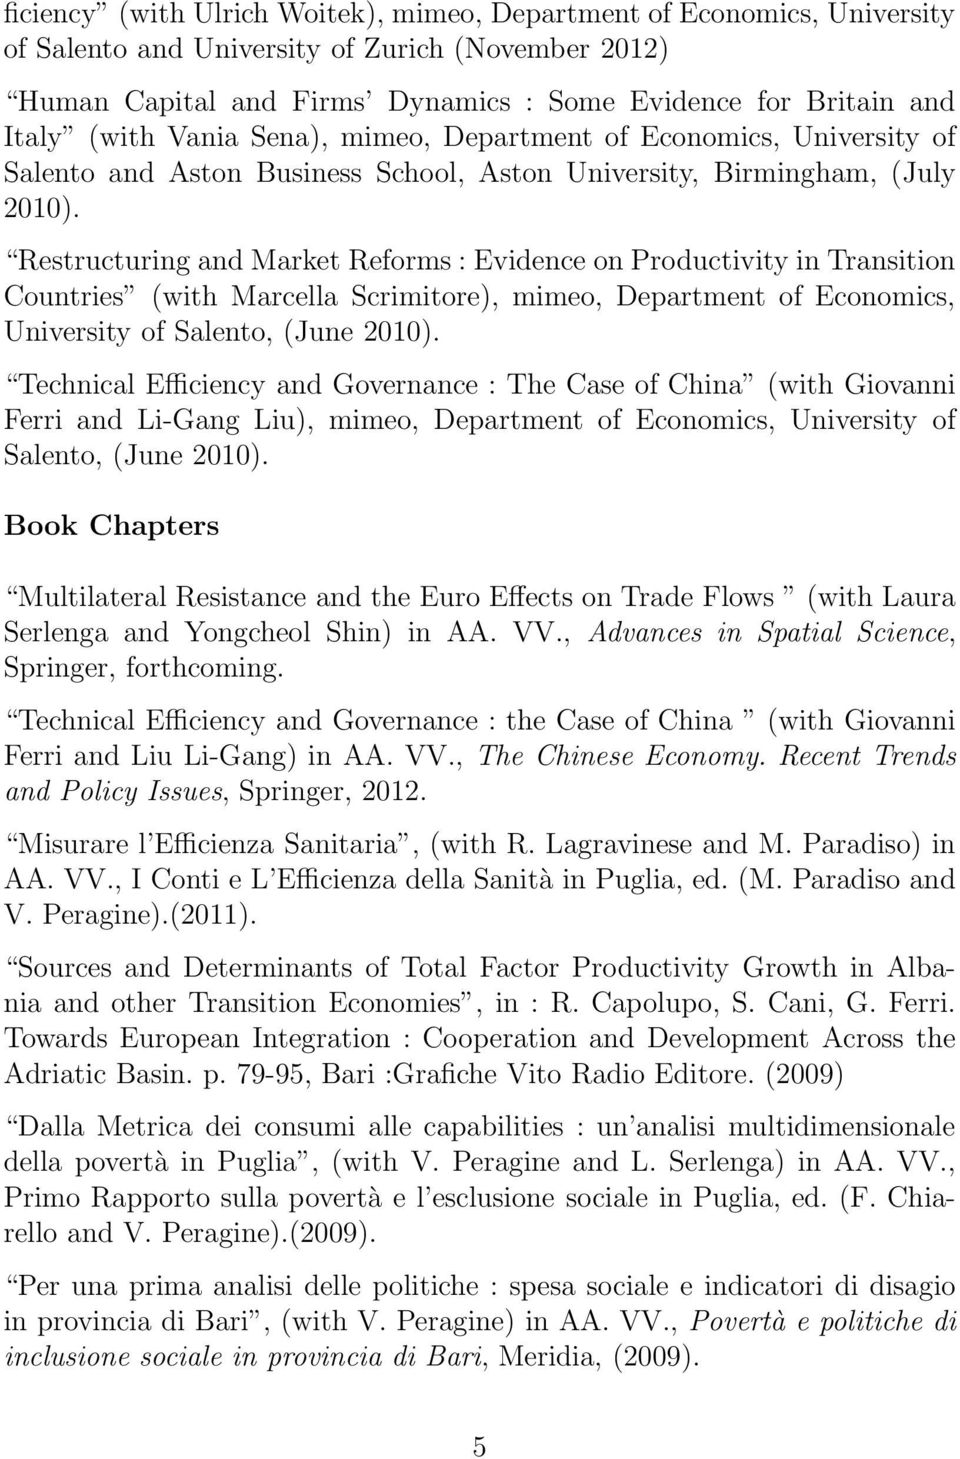 Restructuring and Market Reforms: Evidence on Productivity in Transition Countries (with Marcella Scrimitore), mimeo, Department of Economics, University of Salento, (June 2010).